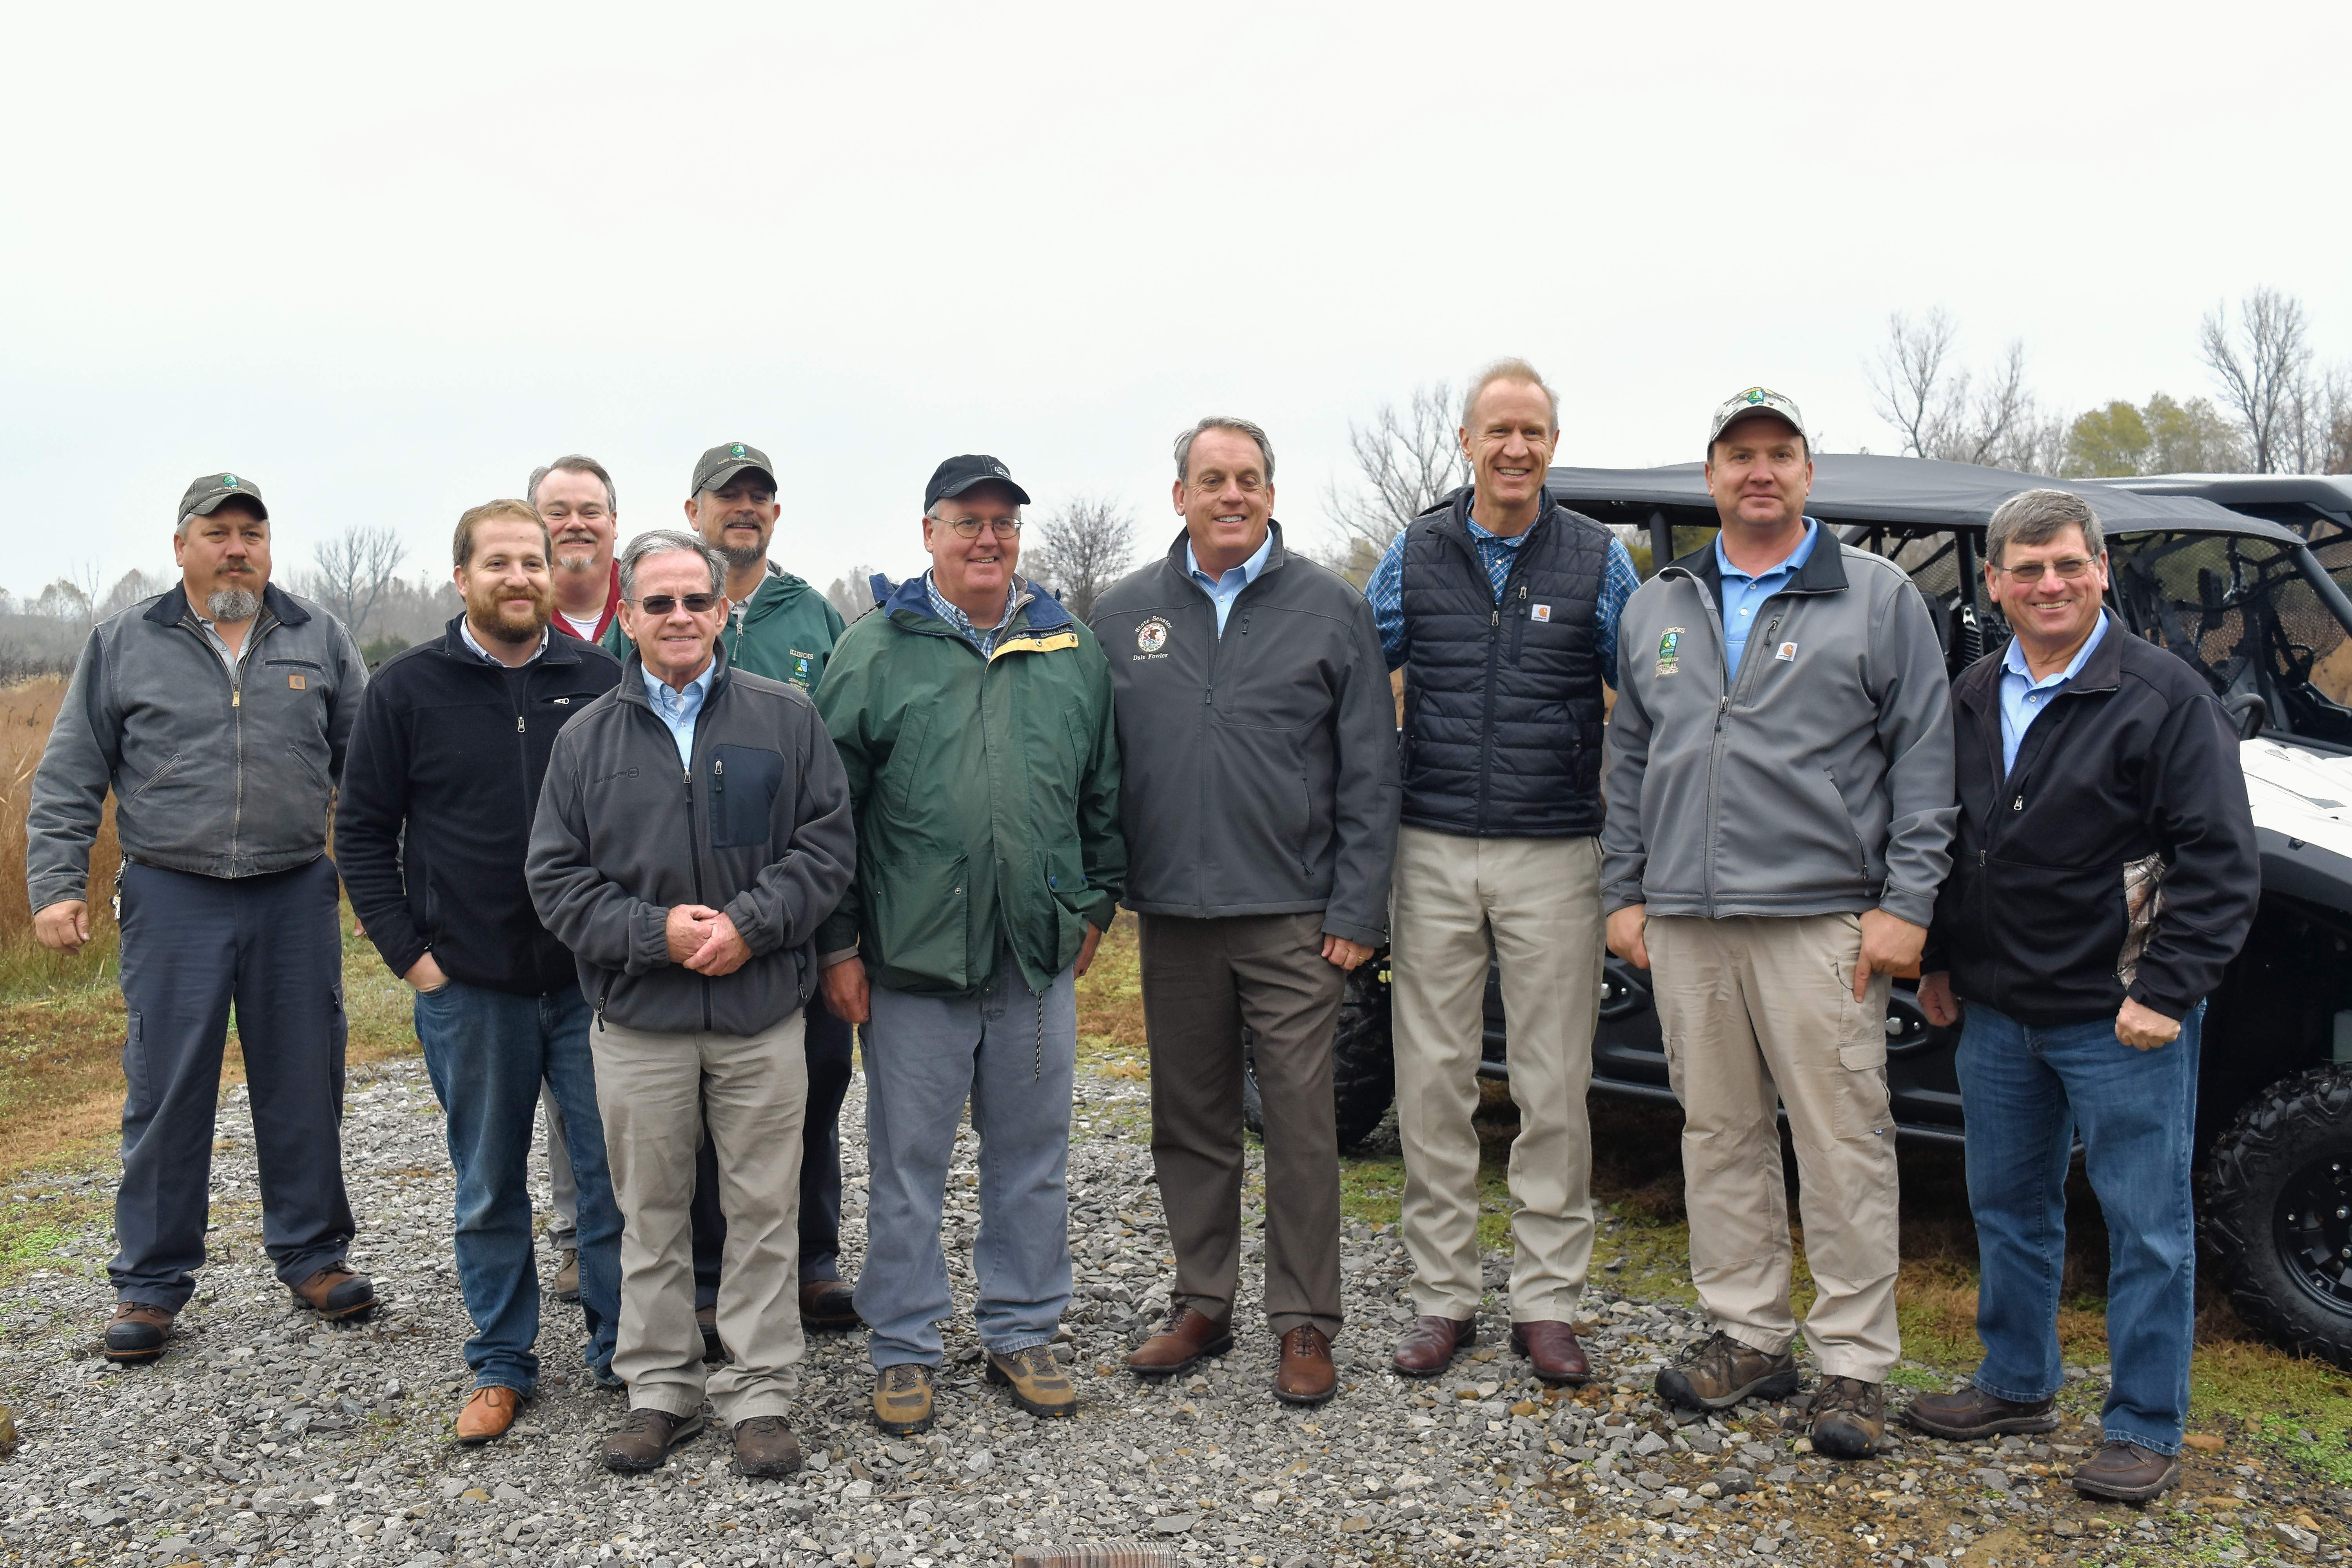 Illinois Department of Natural Resources employees stand for a photo with Gov. Bruce Rauner and IDNR Director Wayne Rosenthal.